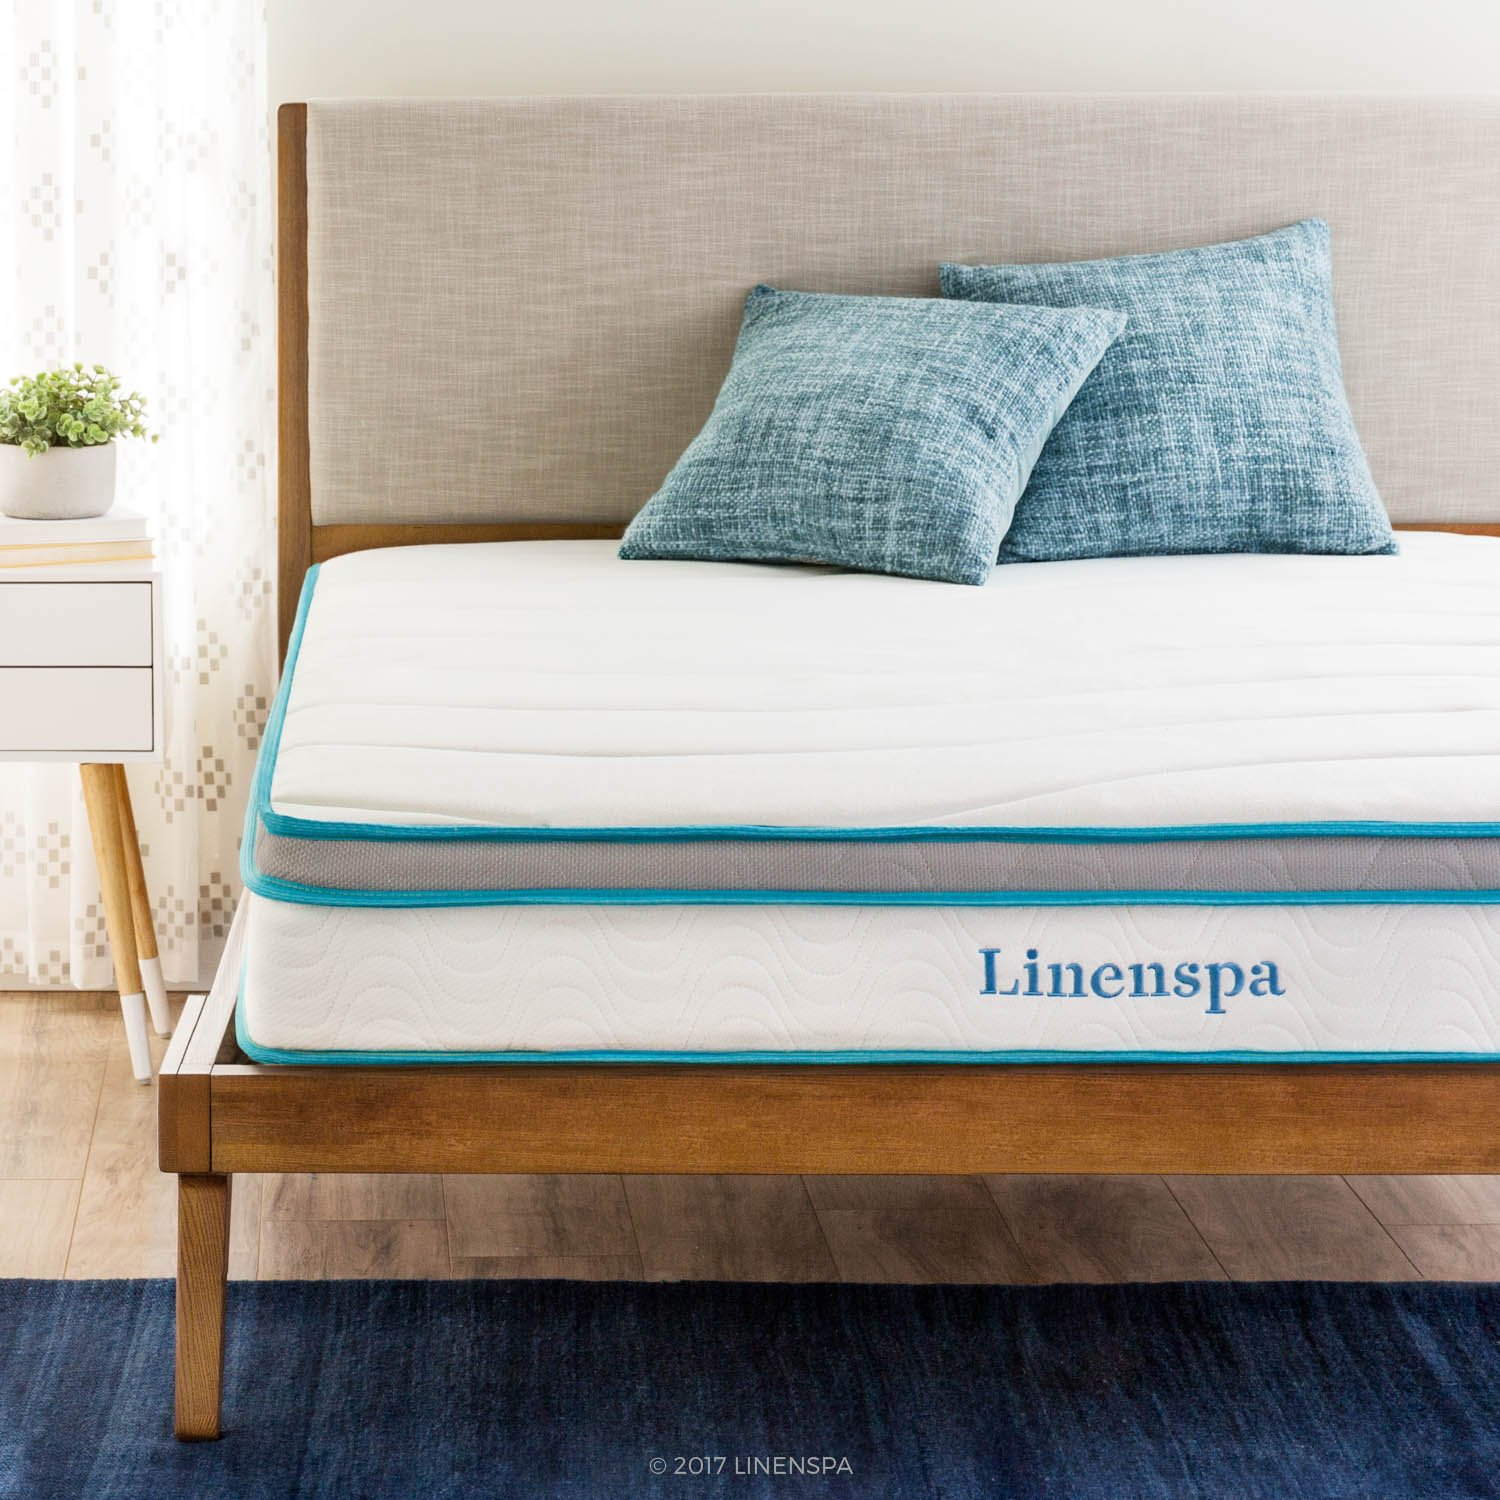 Linenspa Memory Foam Mattress With Hybrid Innerspring